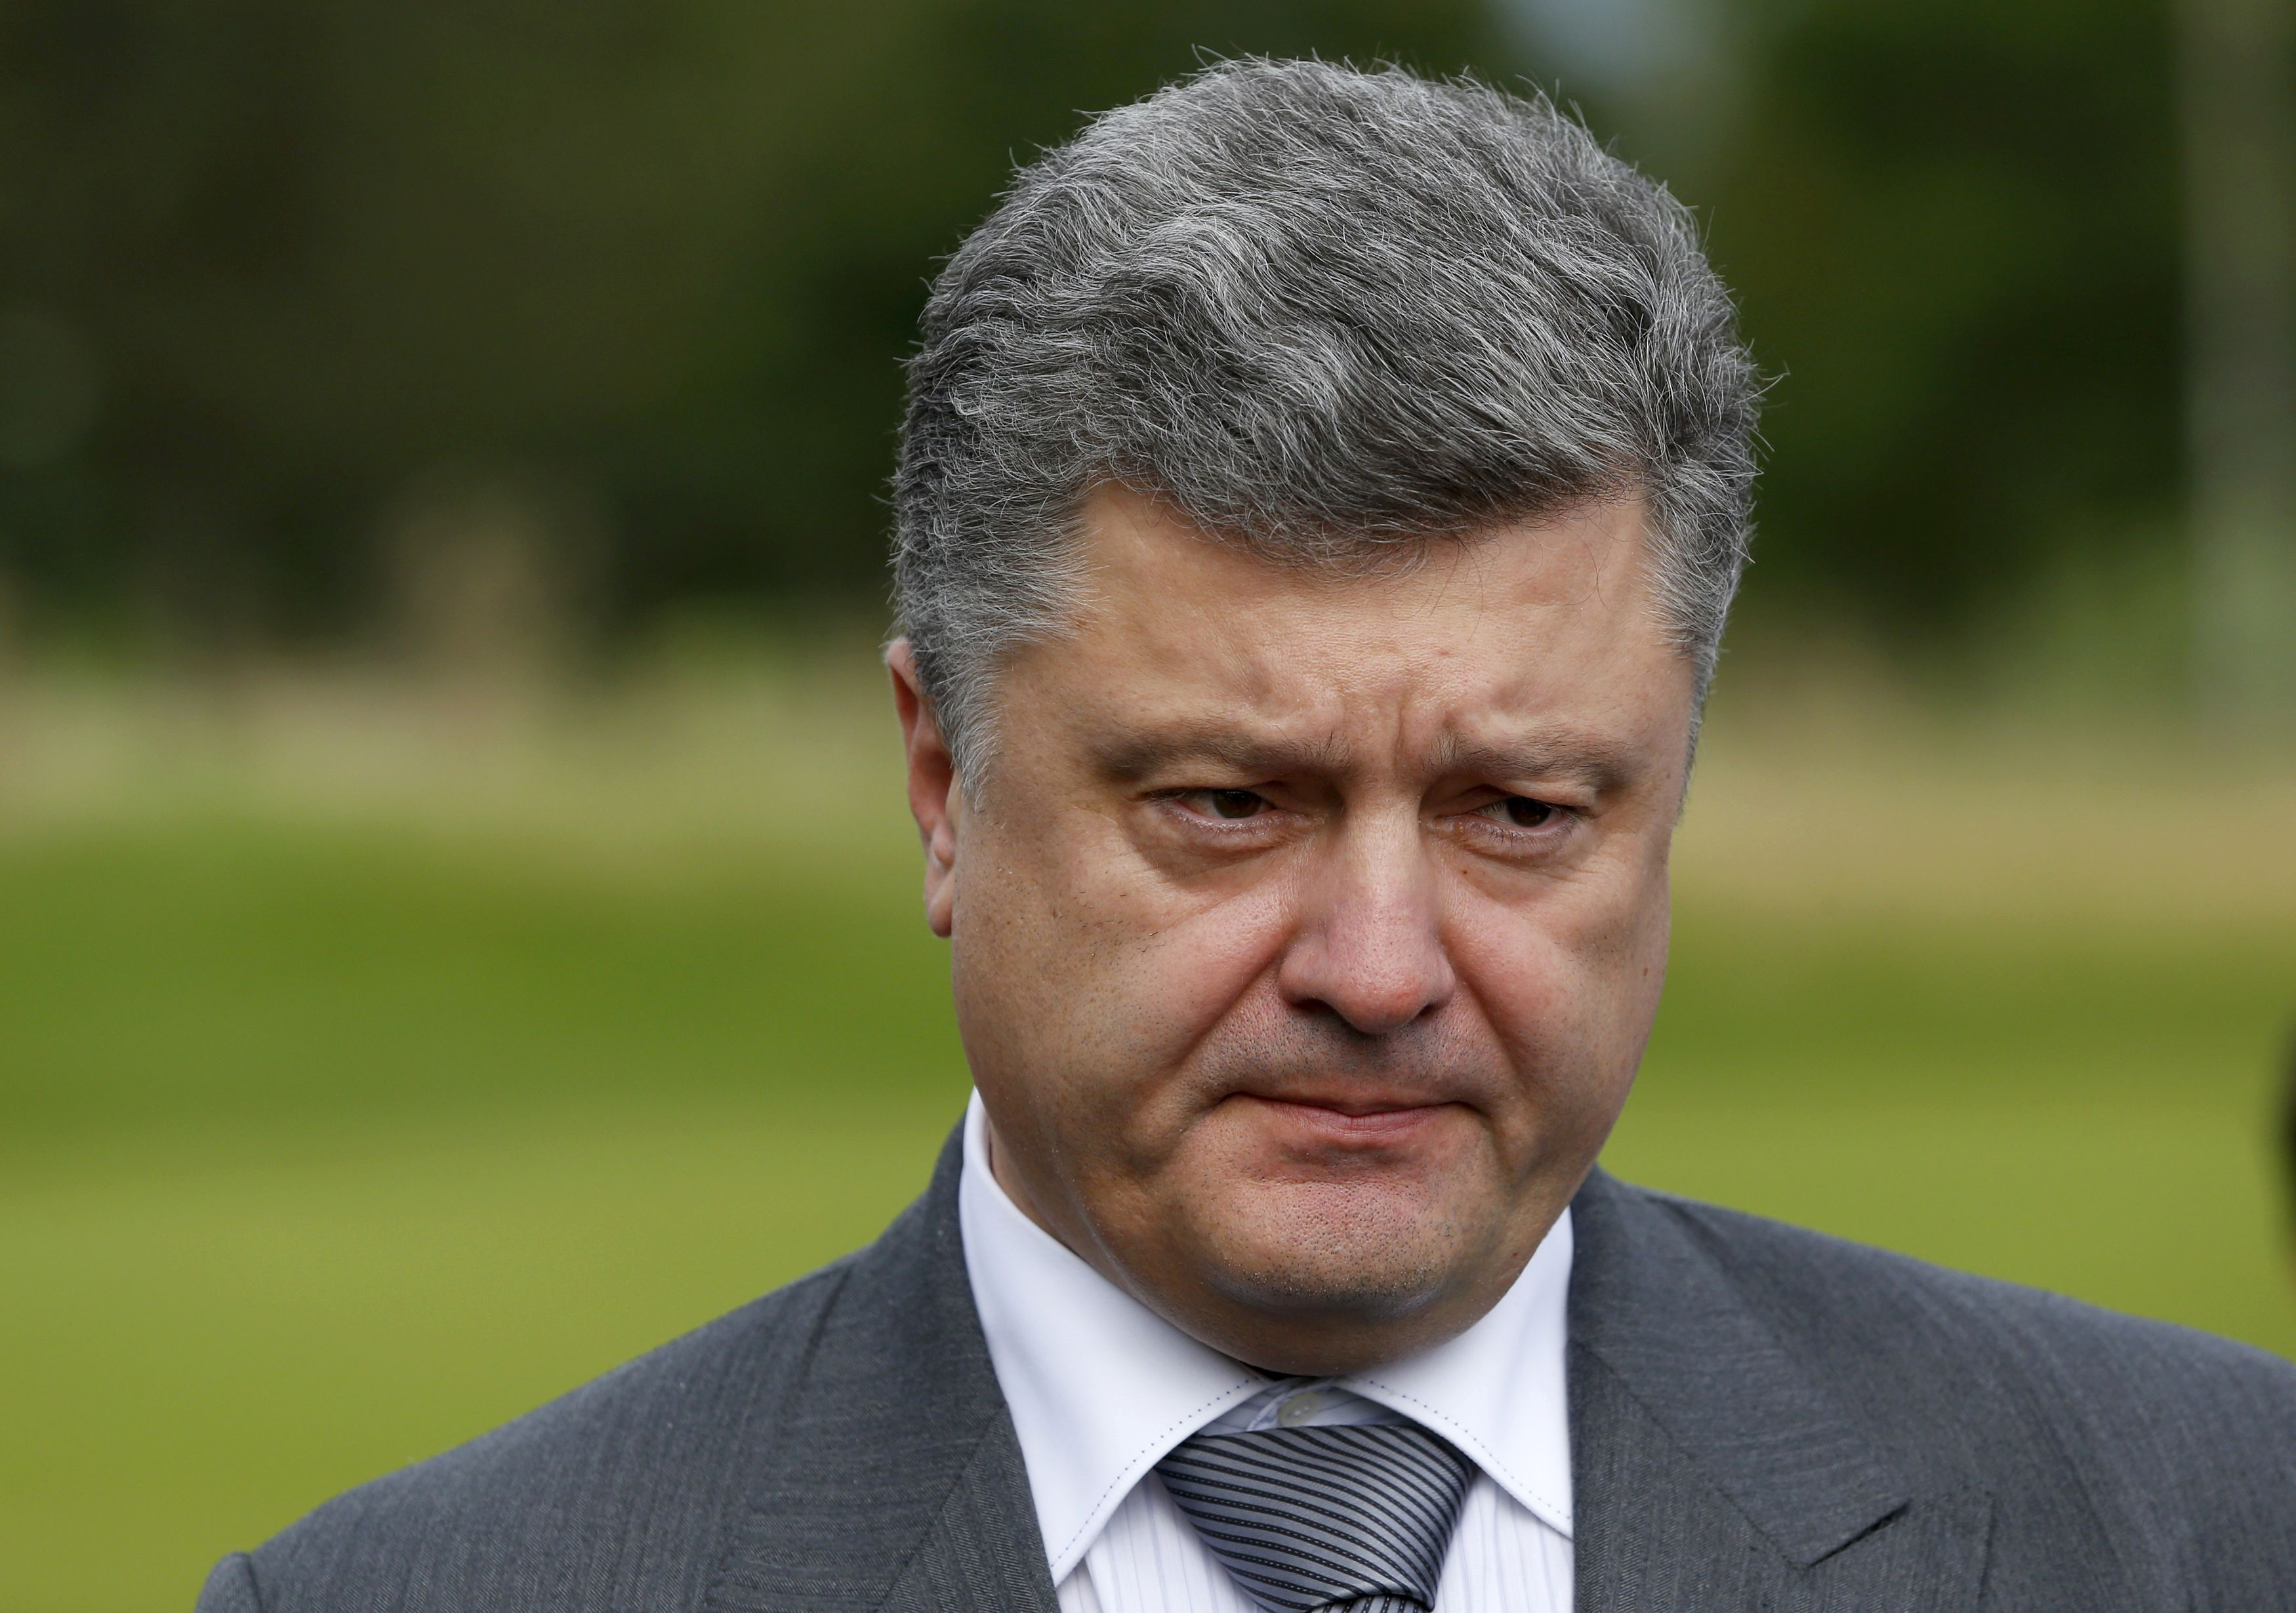 Ukraine's President Petro Poroshenko speaks to the media on the second and final day of the NATO summit at the Celtic Manor resort, near Newport